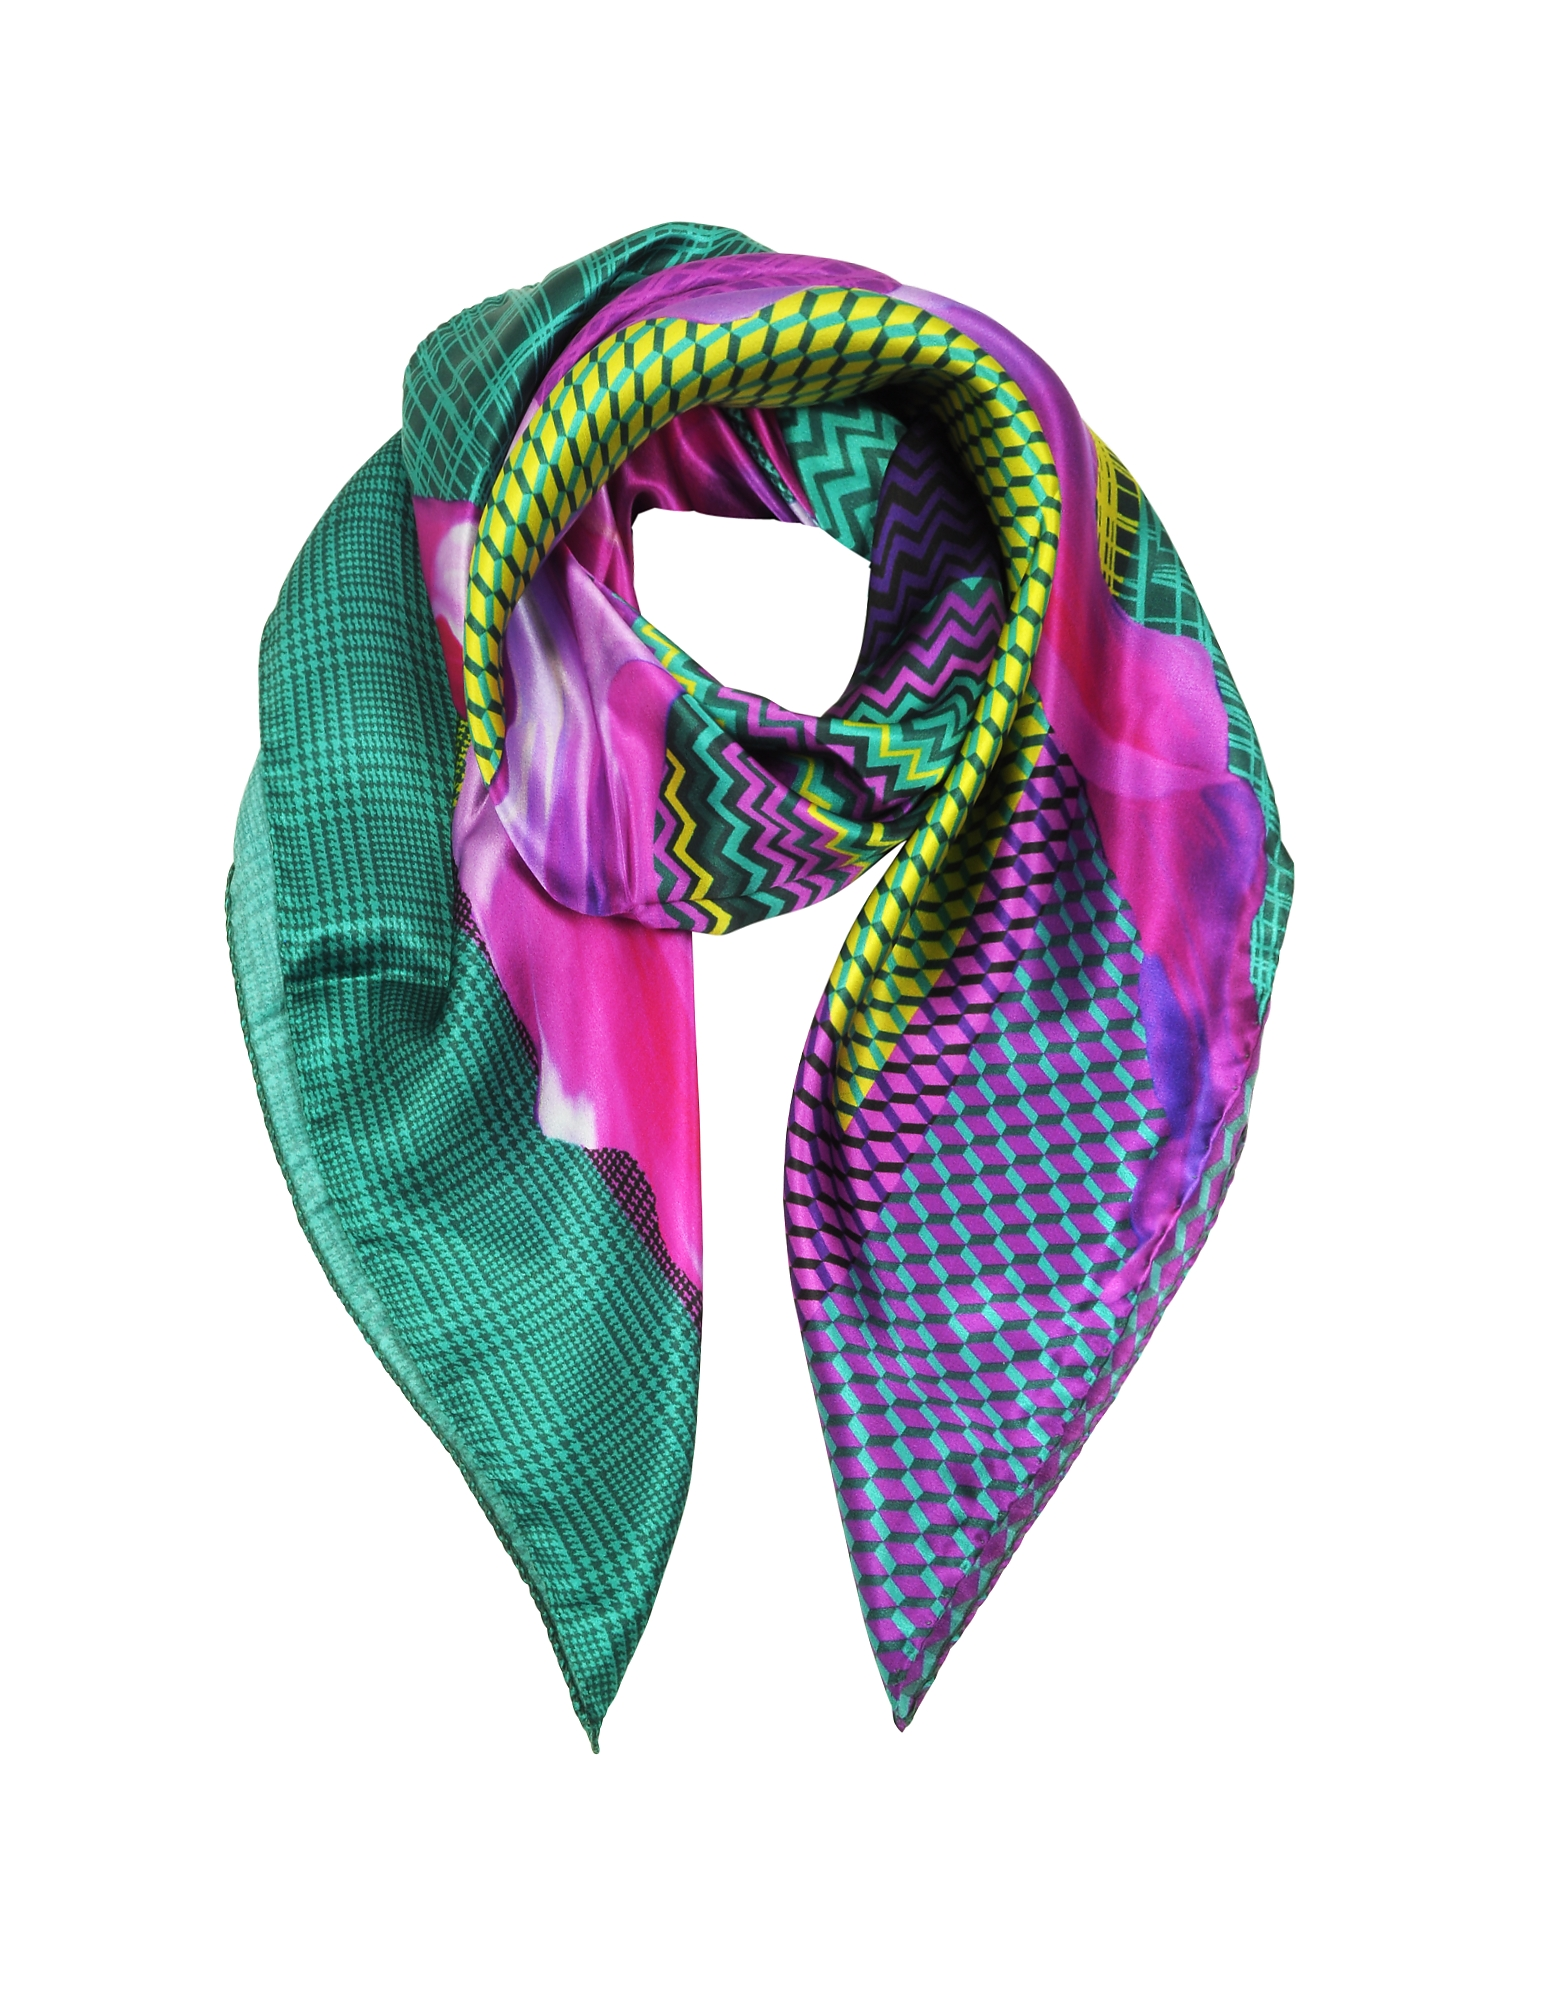 Zig-Zag and Flower Printed Twill Silk Square Scarf